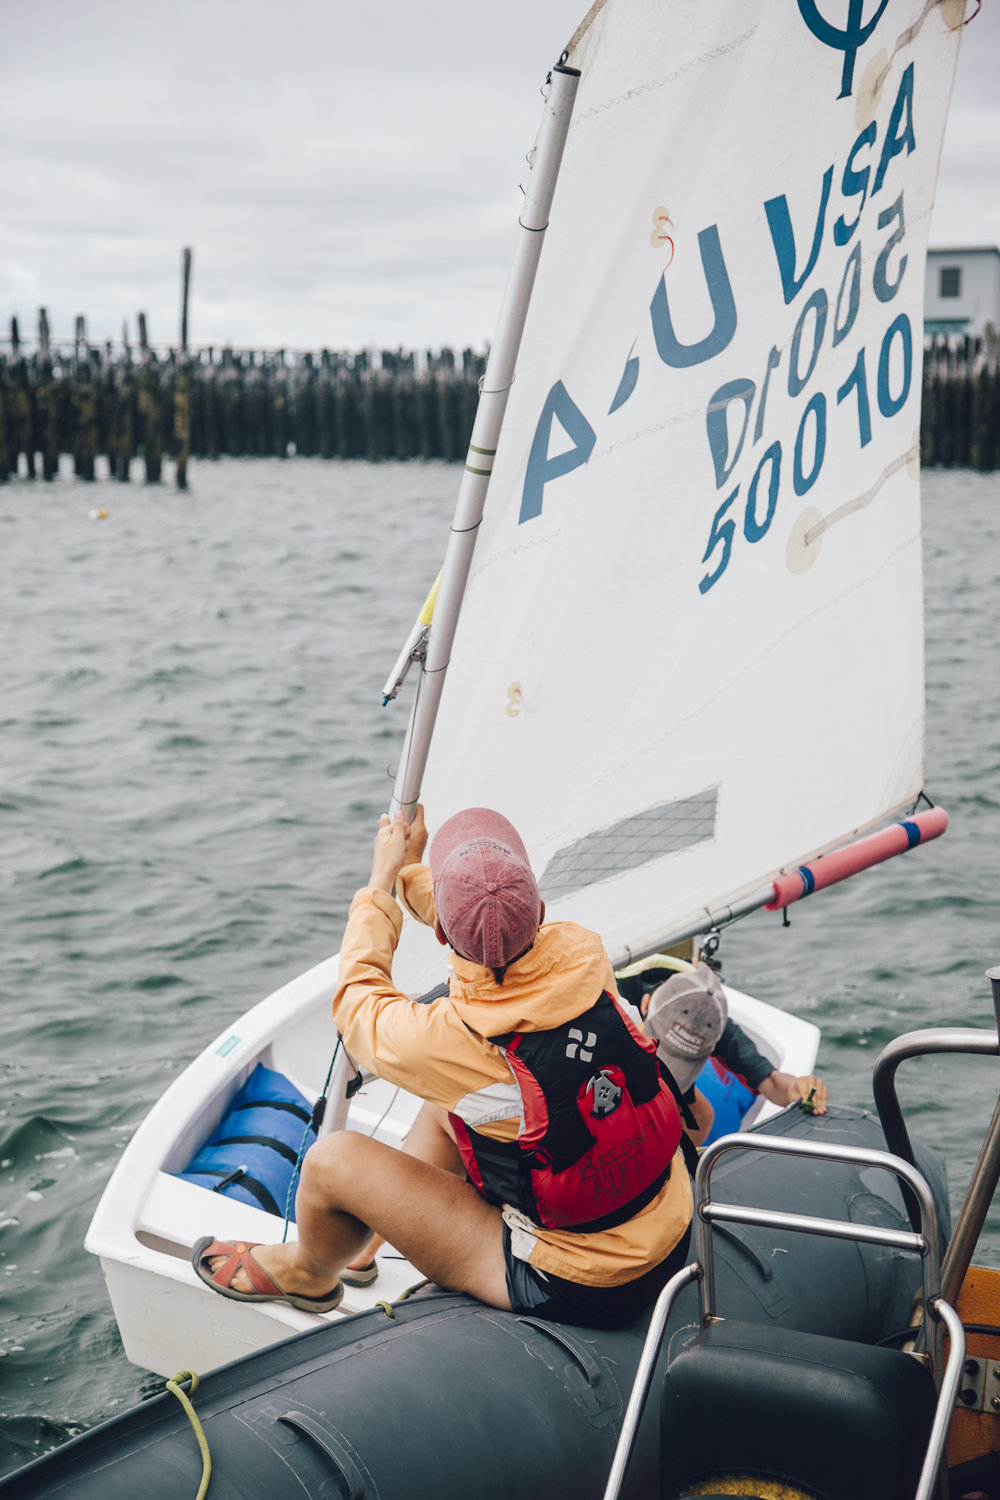 Bridget Ruff helps students set out to sail. © Jenny Rebecca Nelson